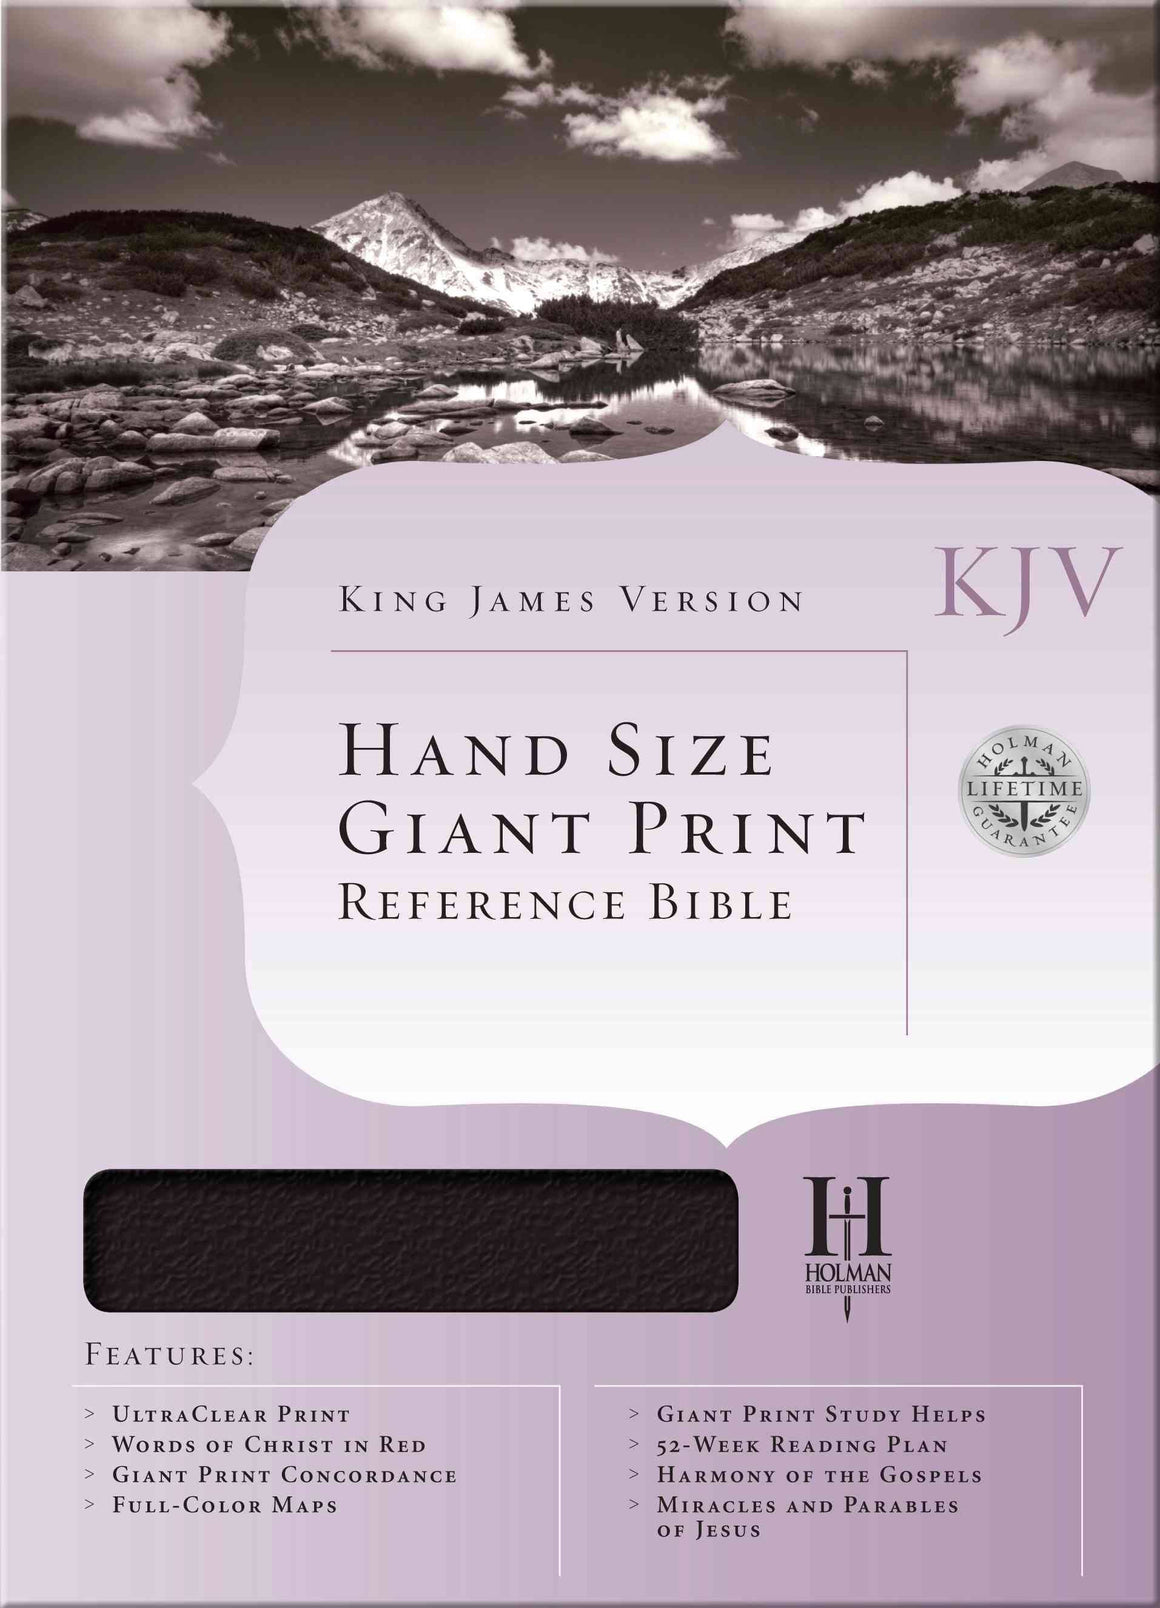 Bible: KJV, Holman, Hand Size, Giant Print, Leather Imitation, Brown/Tan